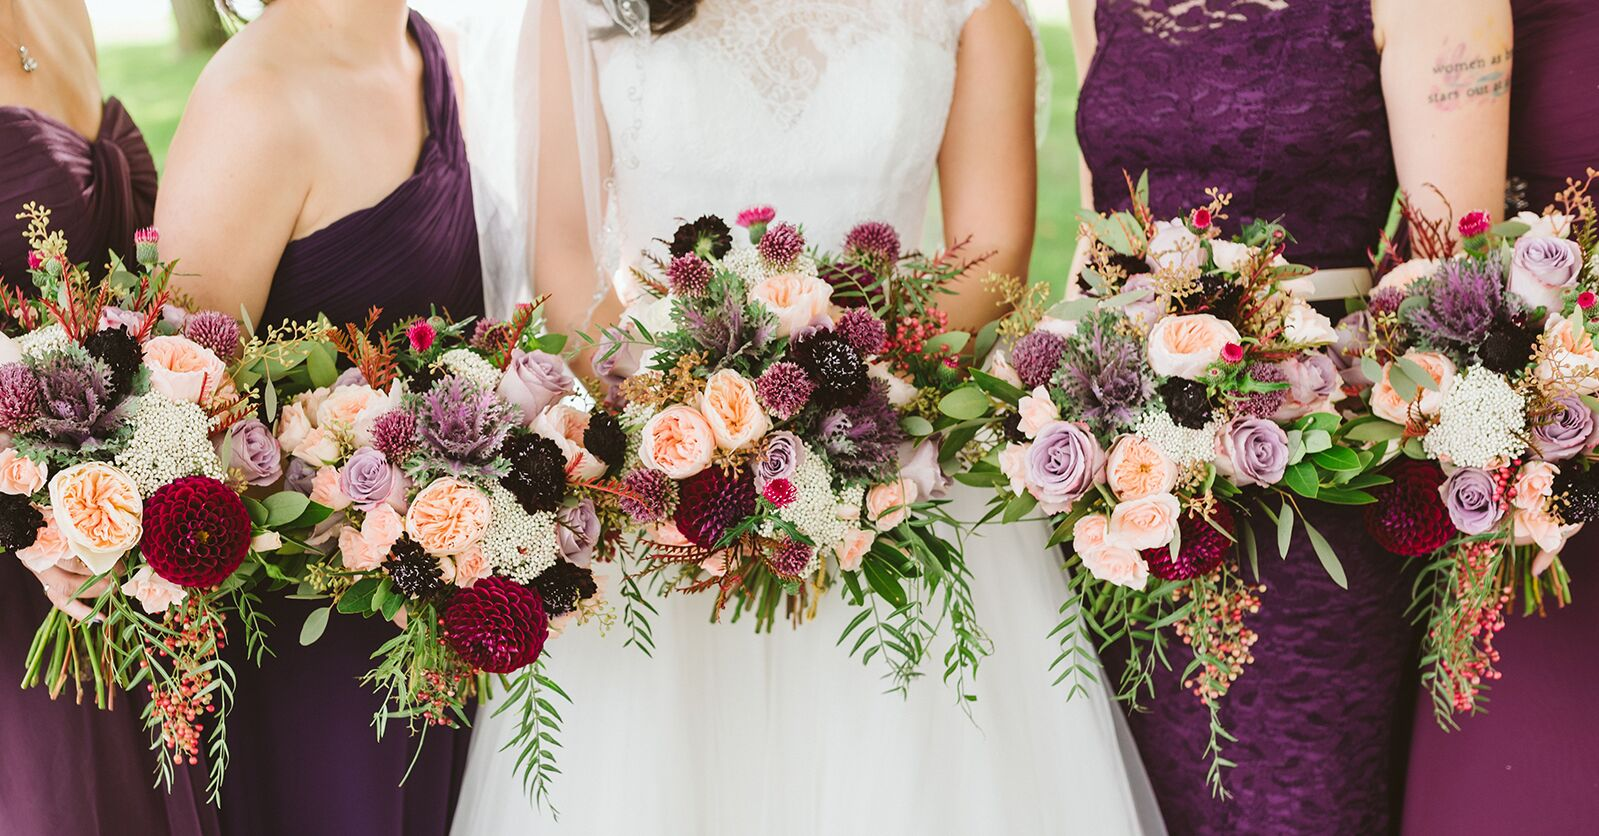 Our Official Guide to the Symbolic Meanings of Wedding Flowers